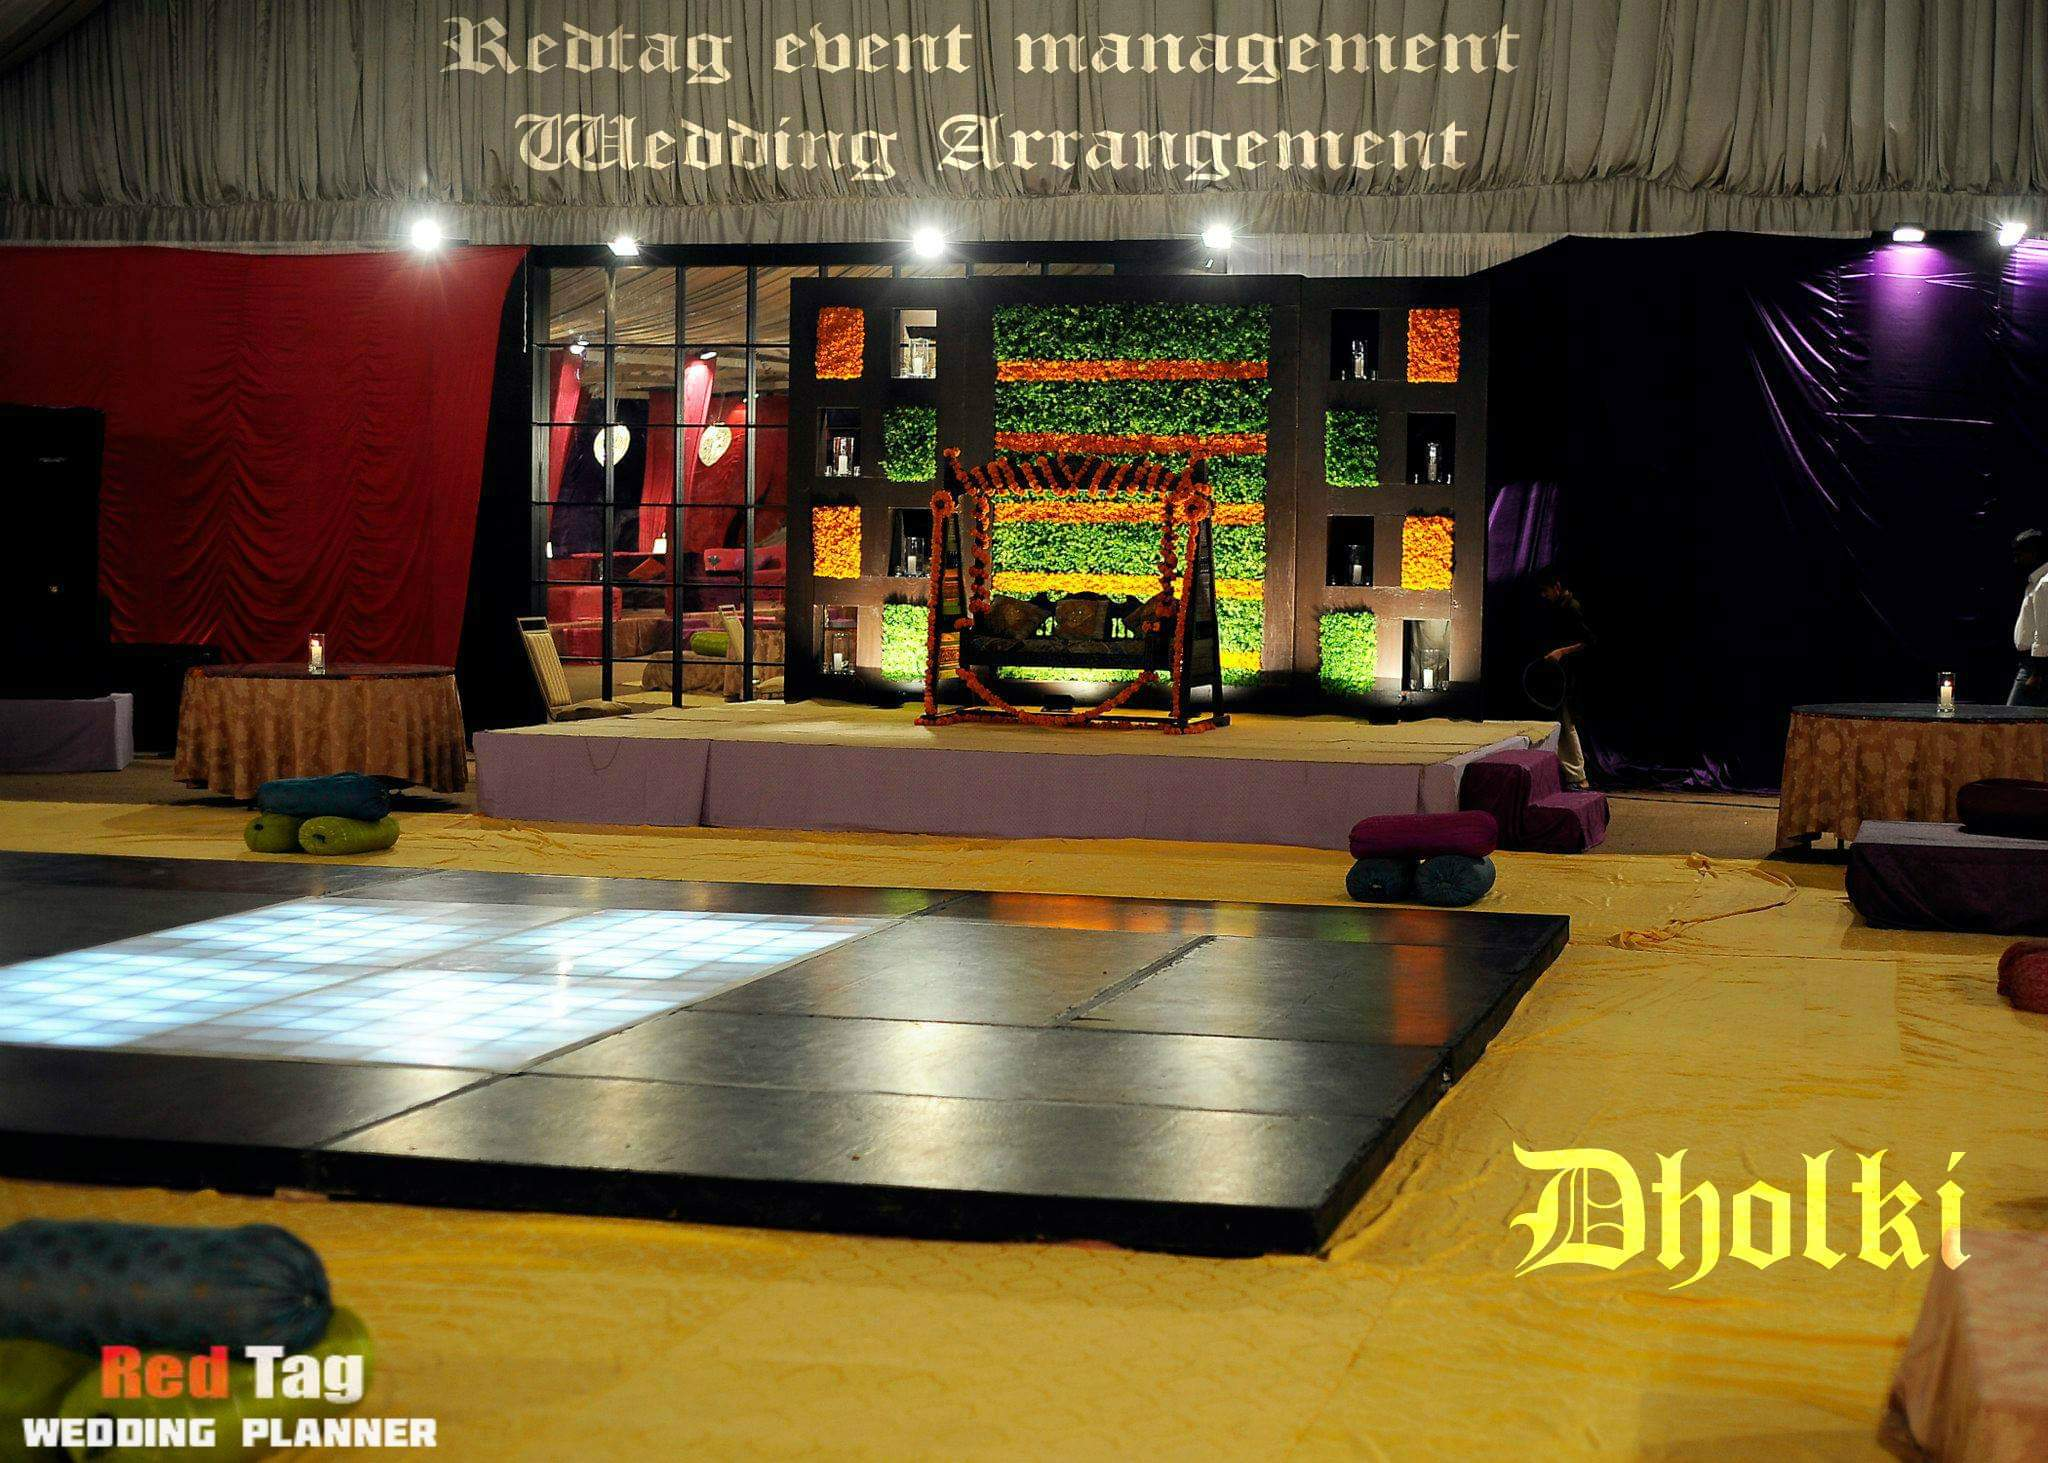 Events planning in Chandigarh | Red Tag Caterers | Events planning in Chandigarh, best events planning in Chandigarh,  - GL79939